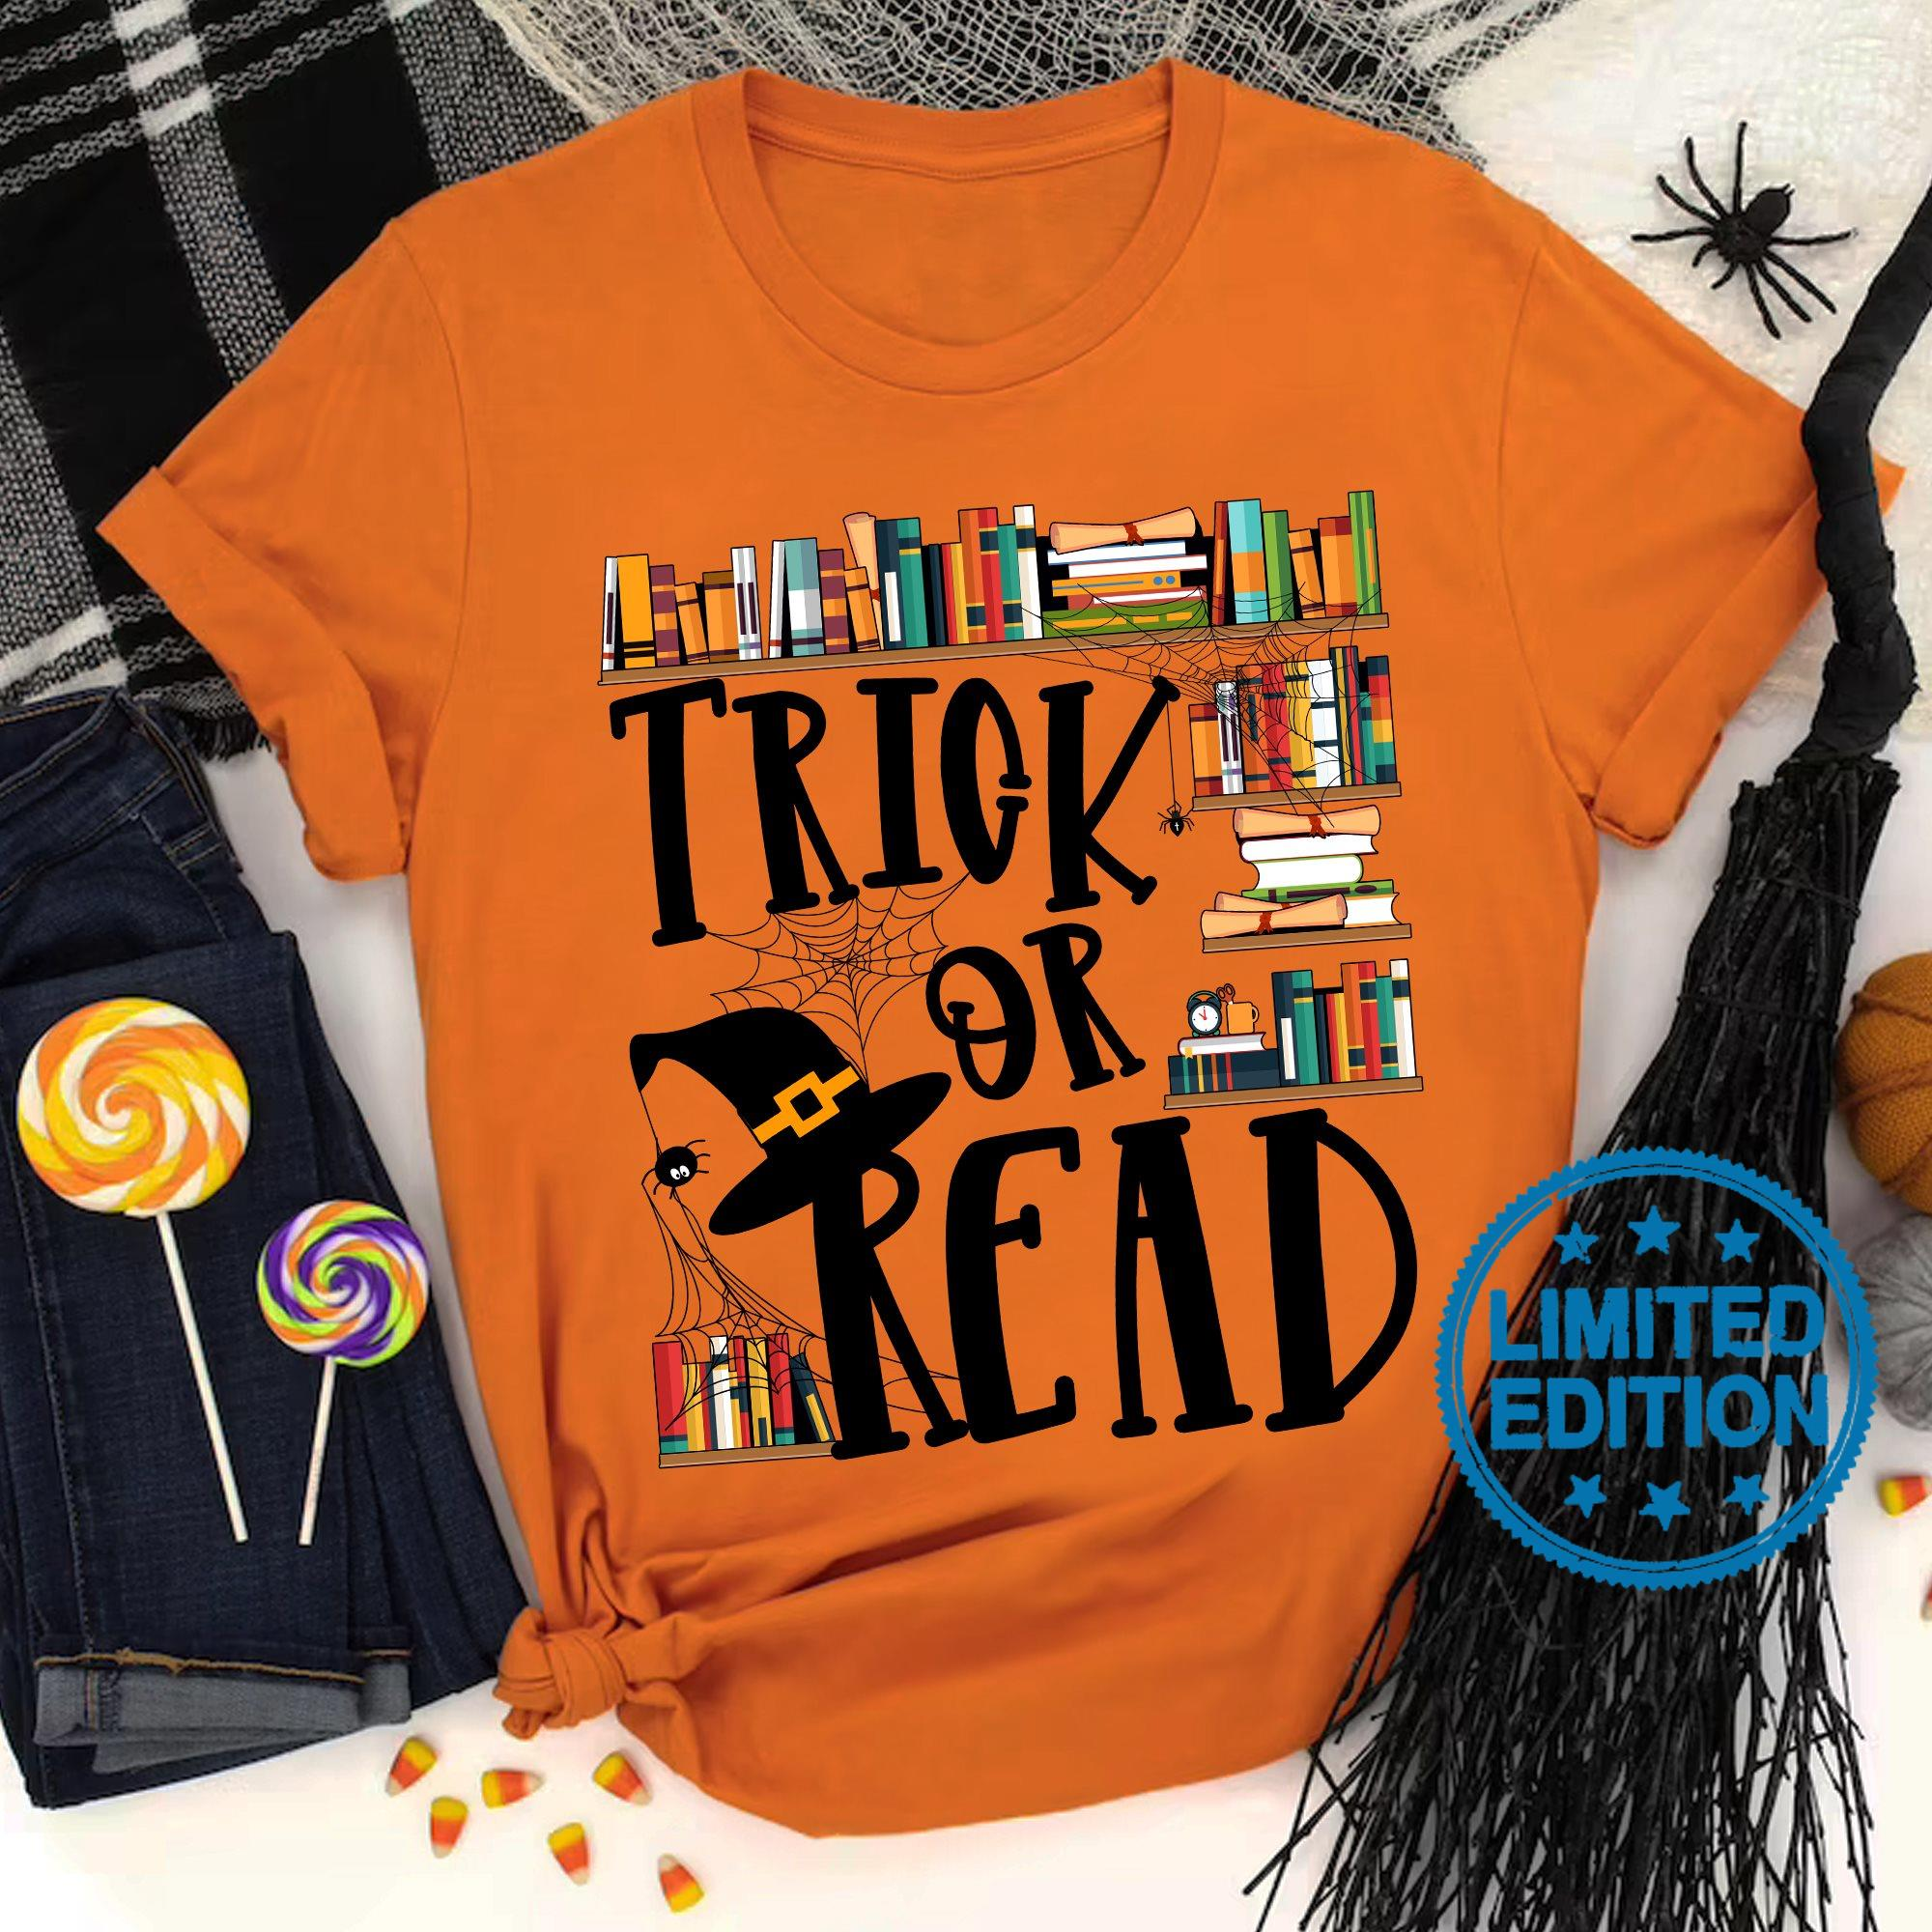 Trick or read book shirt